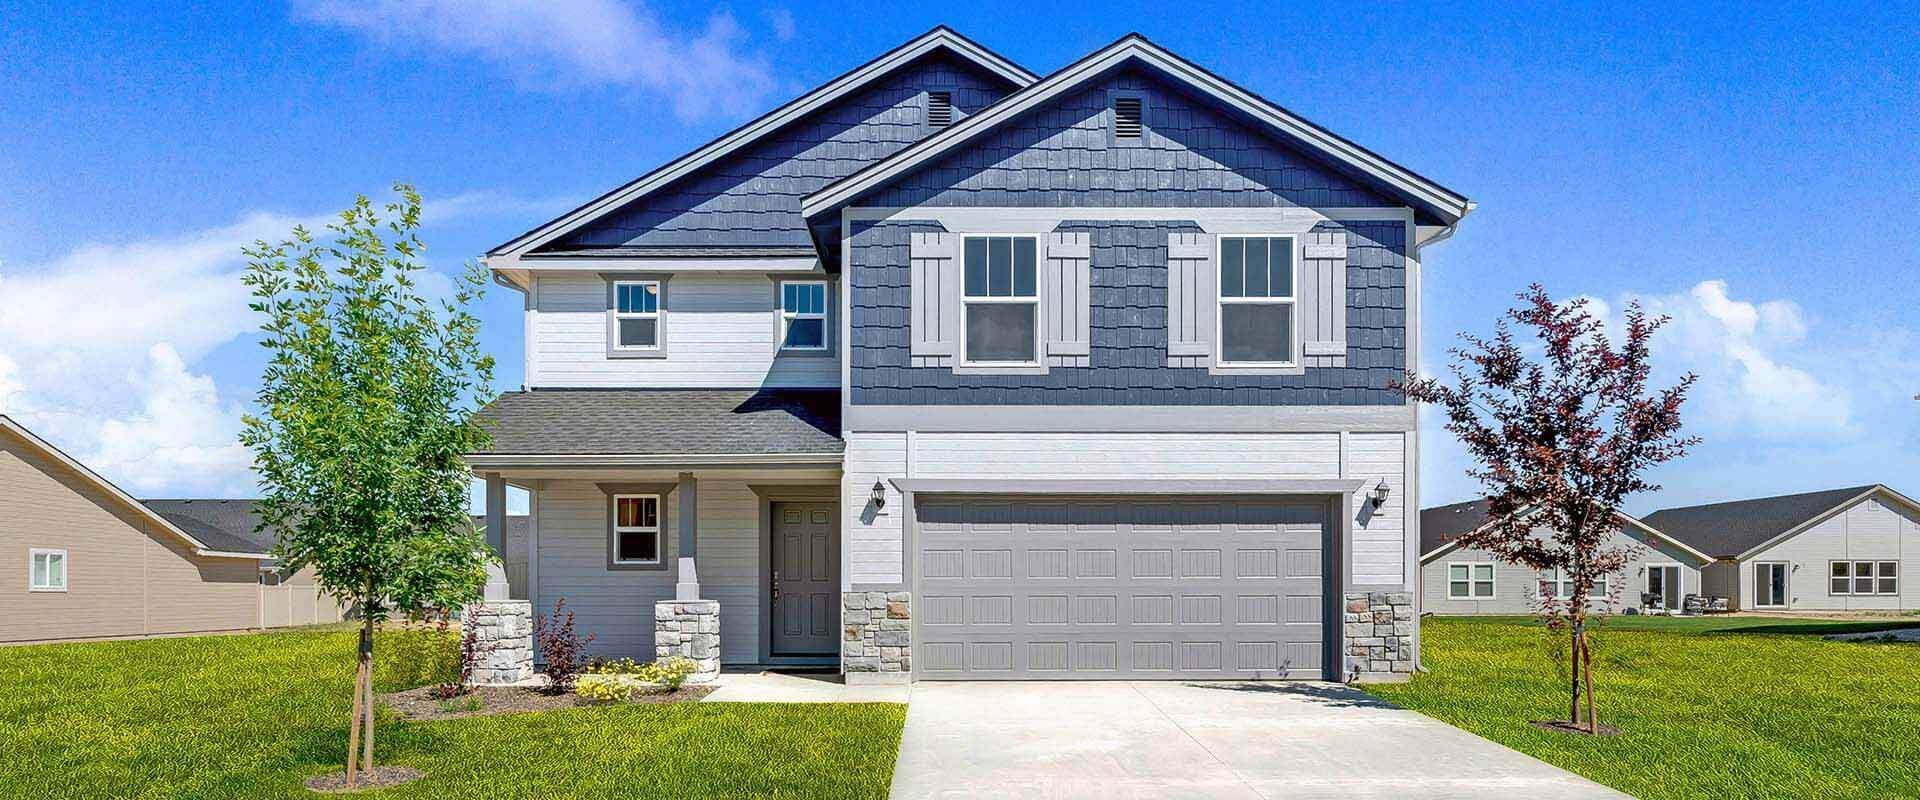 Ponderosa-new-homes-boise-idaho-hubble-homes.jpg